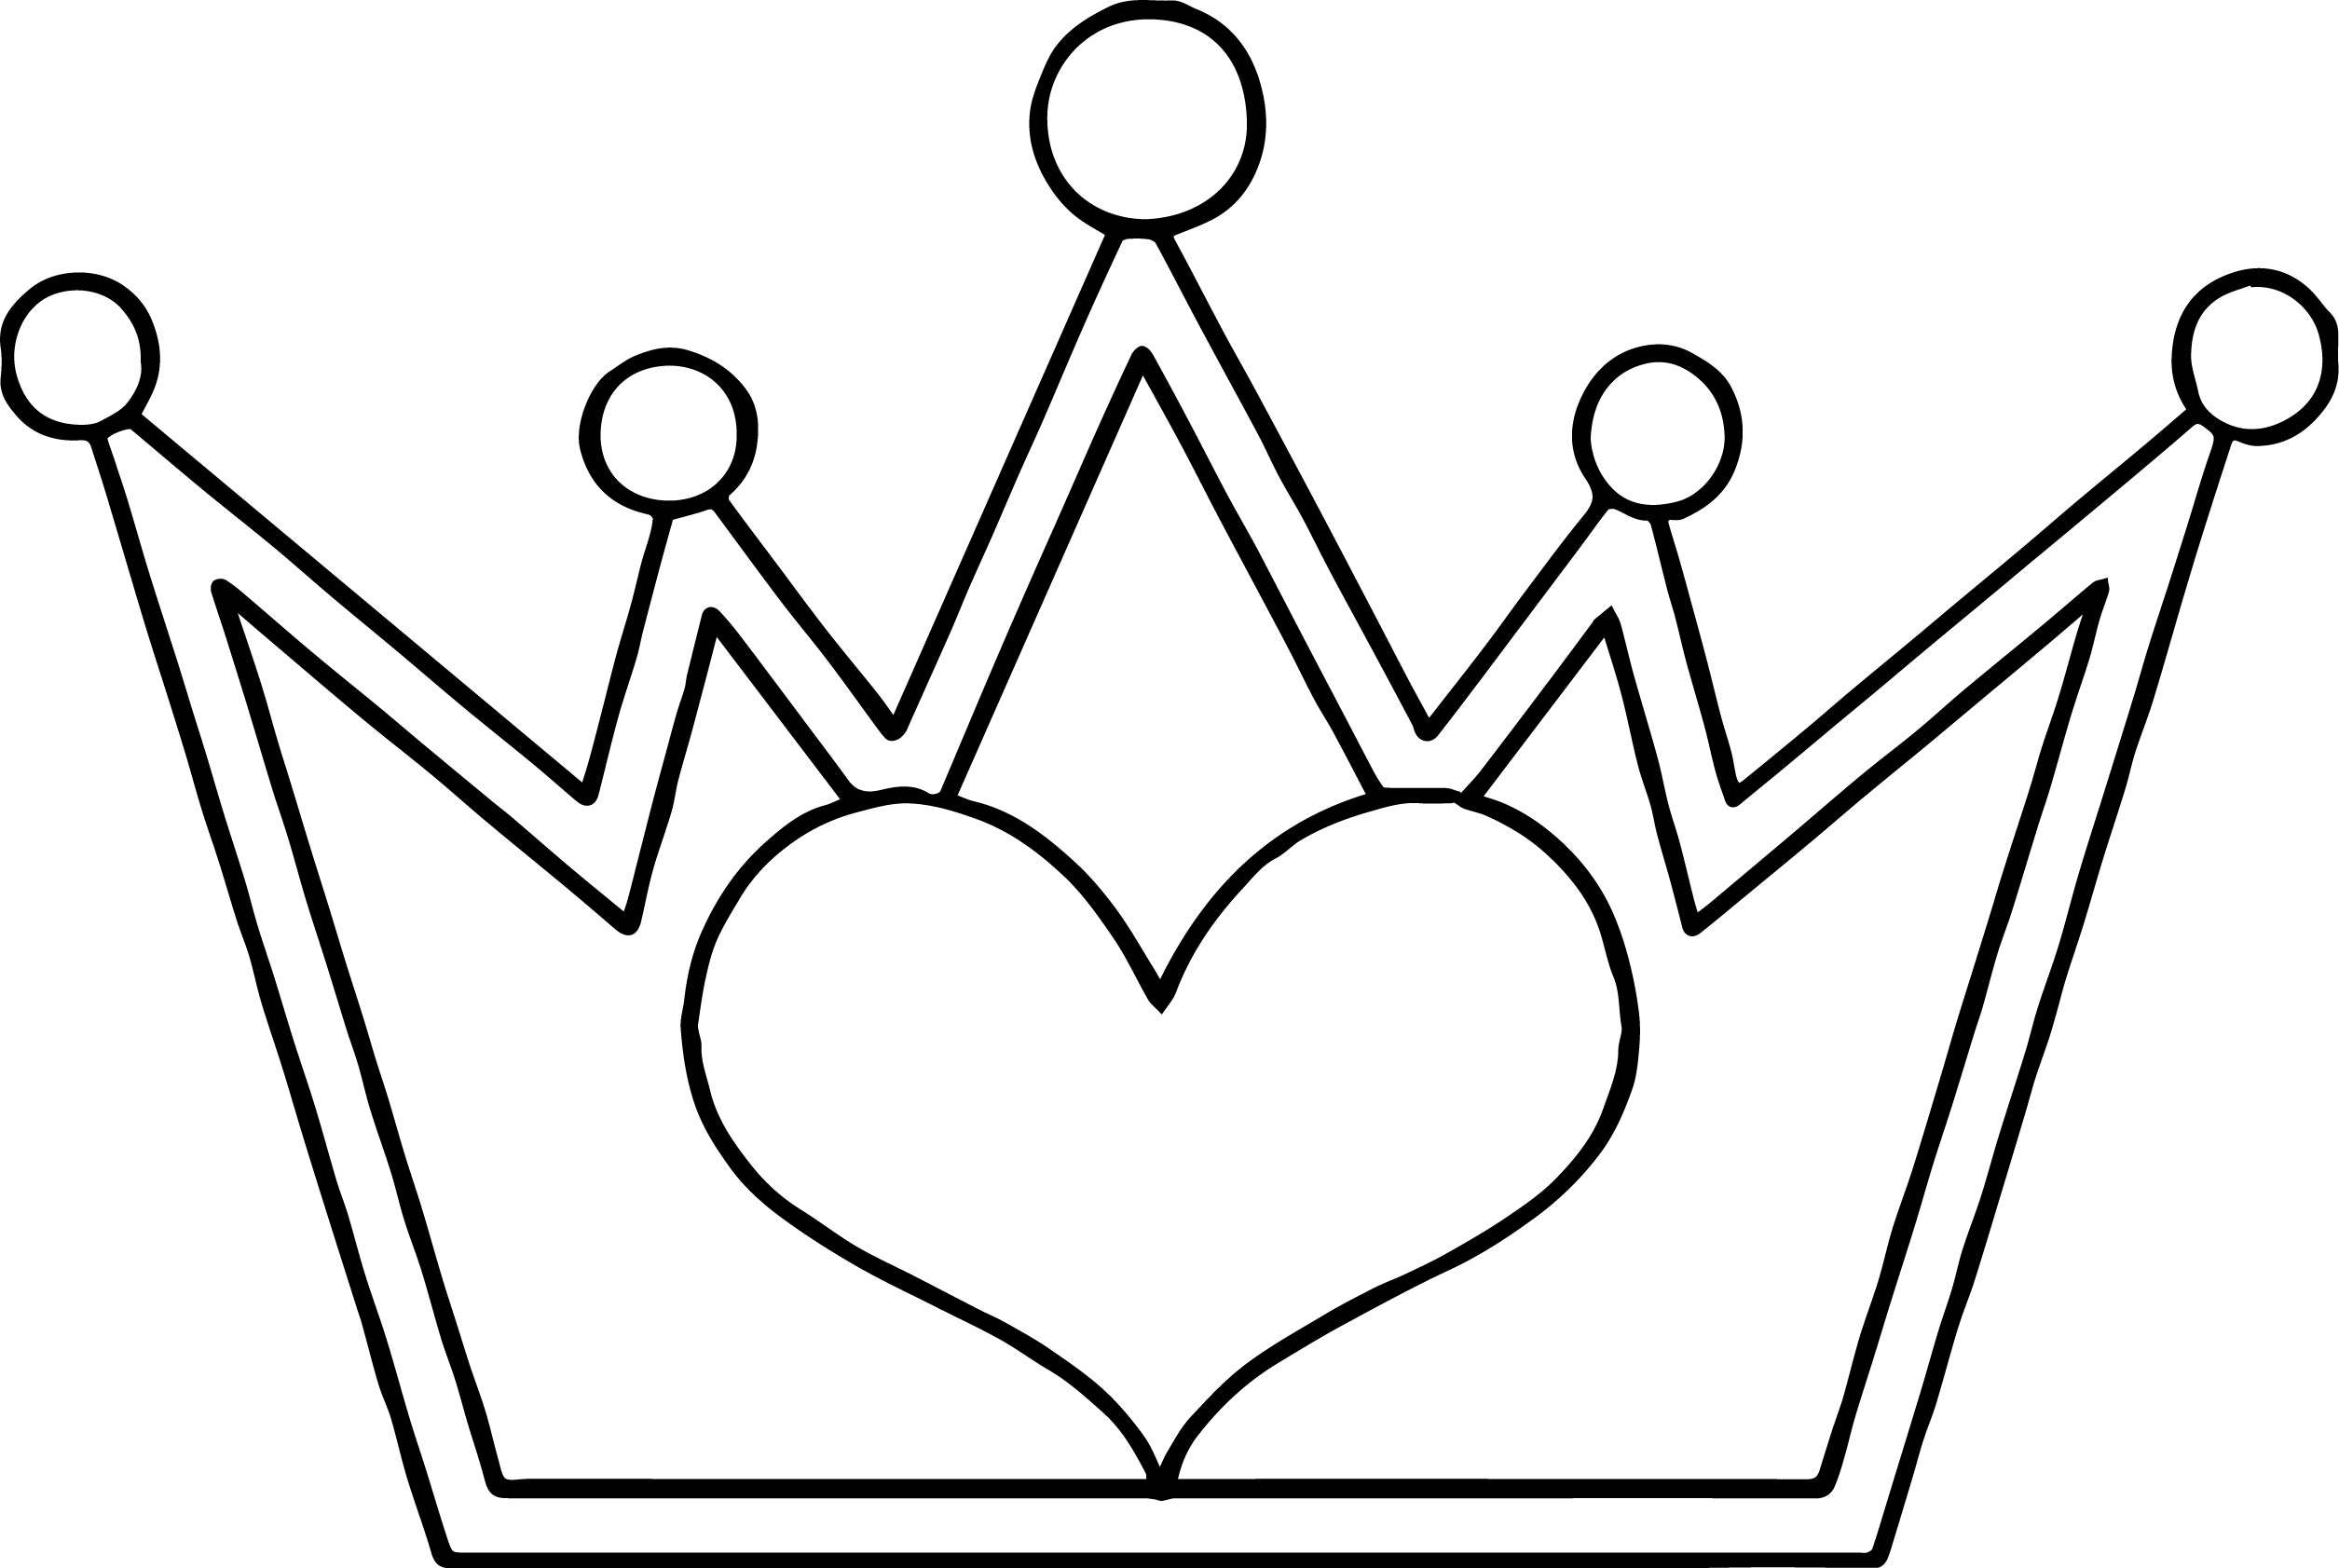 how to draw a crown easy drawing princess crown at paintingvalleycom how crown draw to a